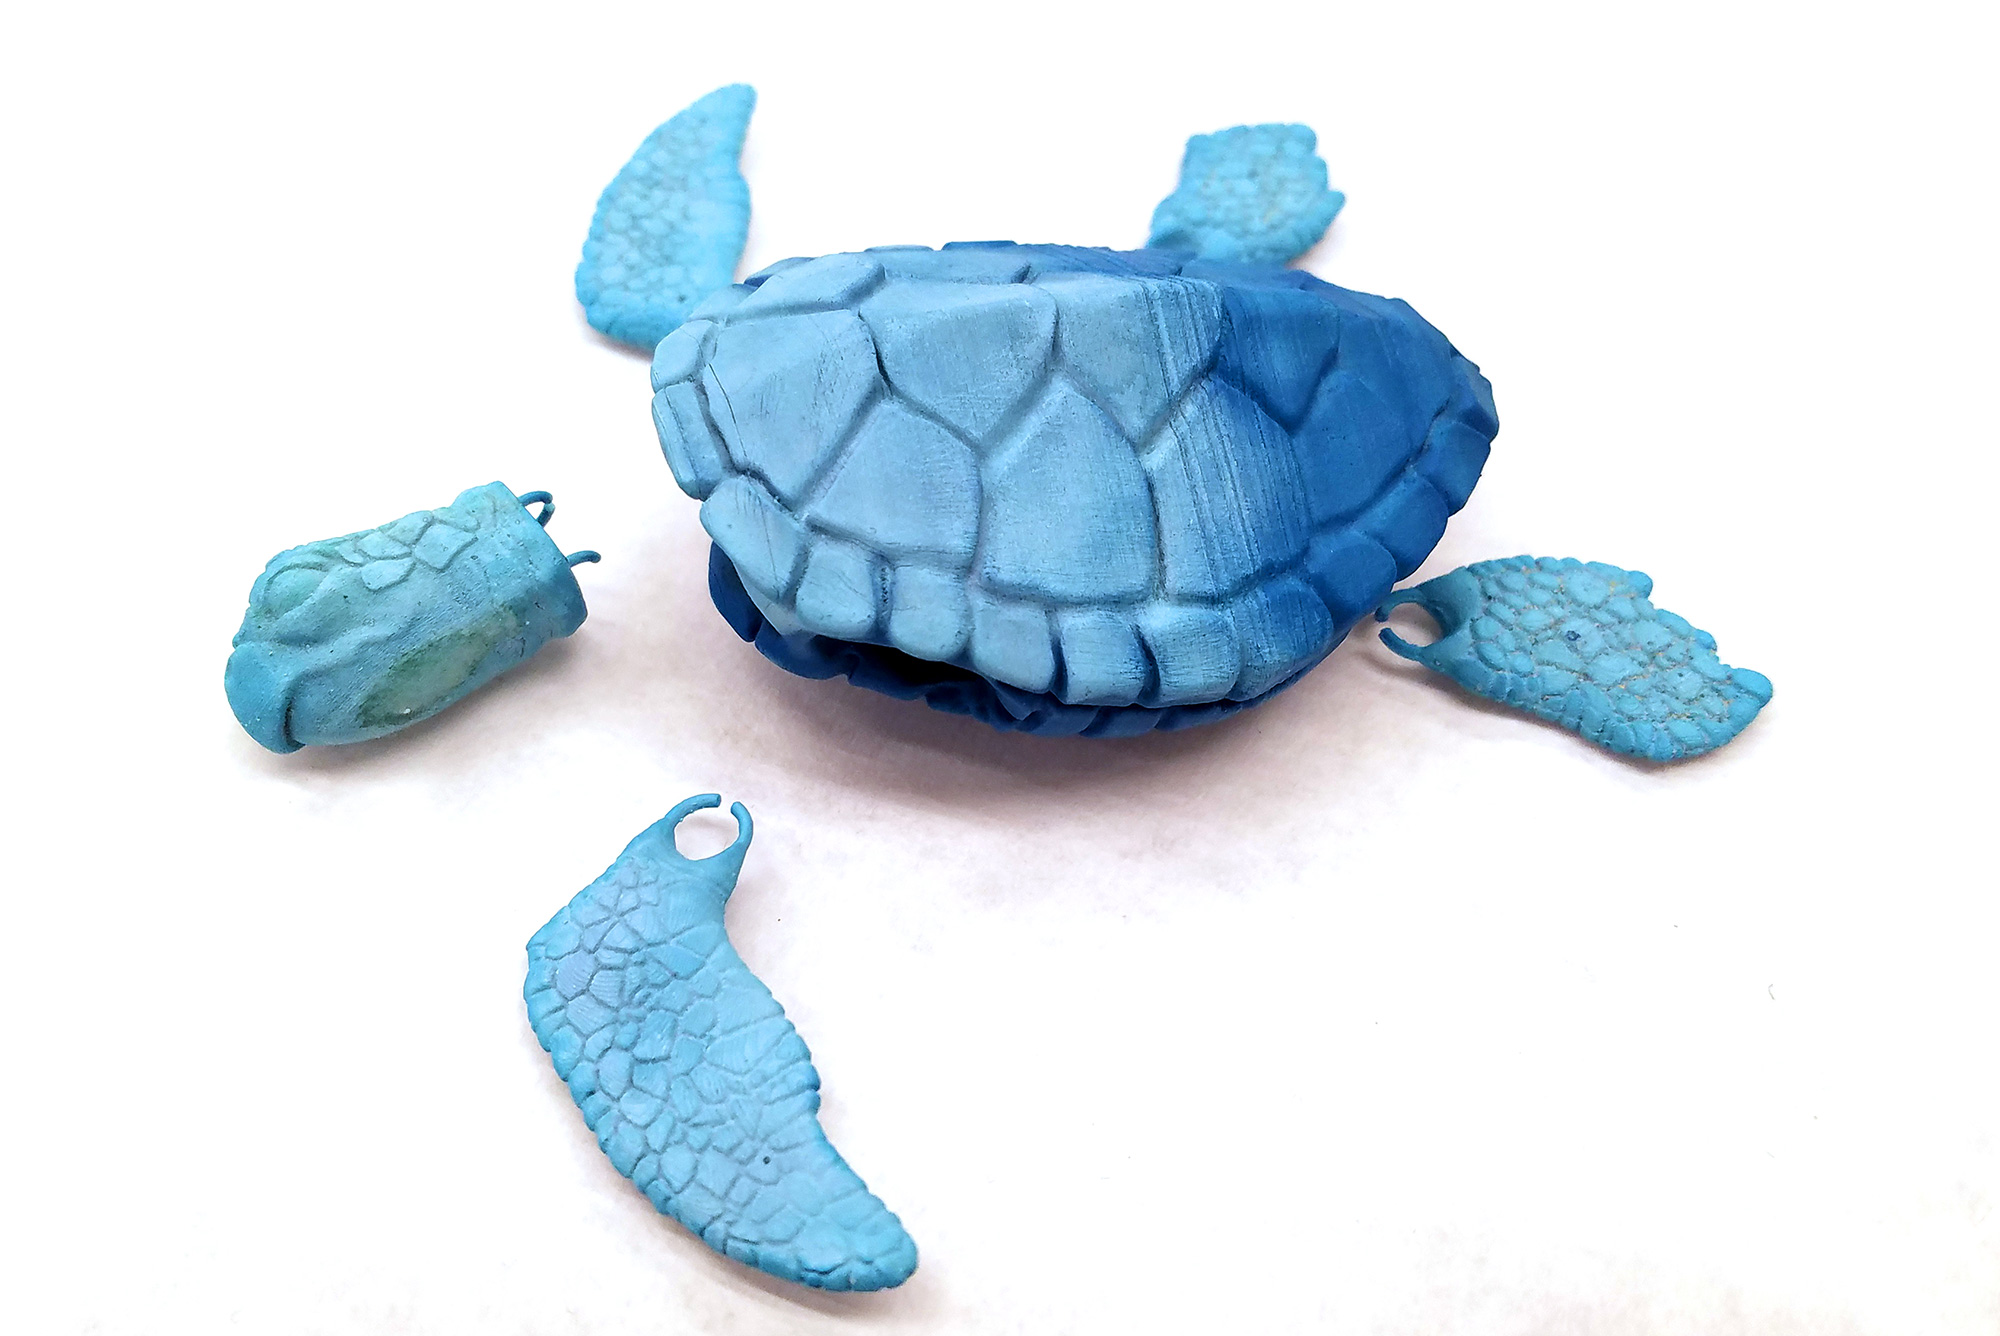 3D printed tortoise in multiple pieces